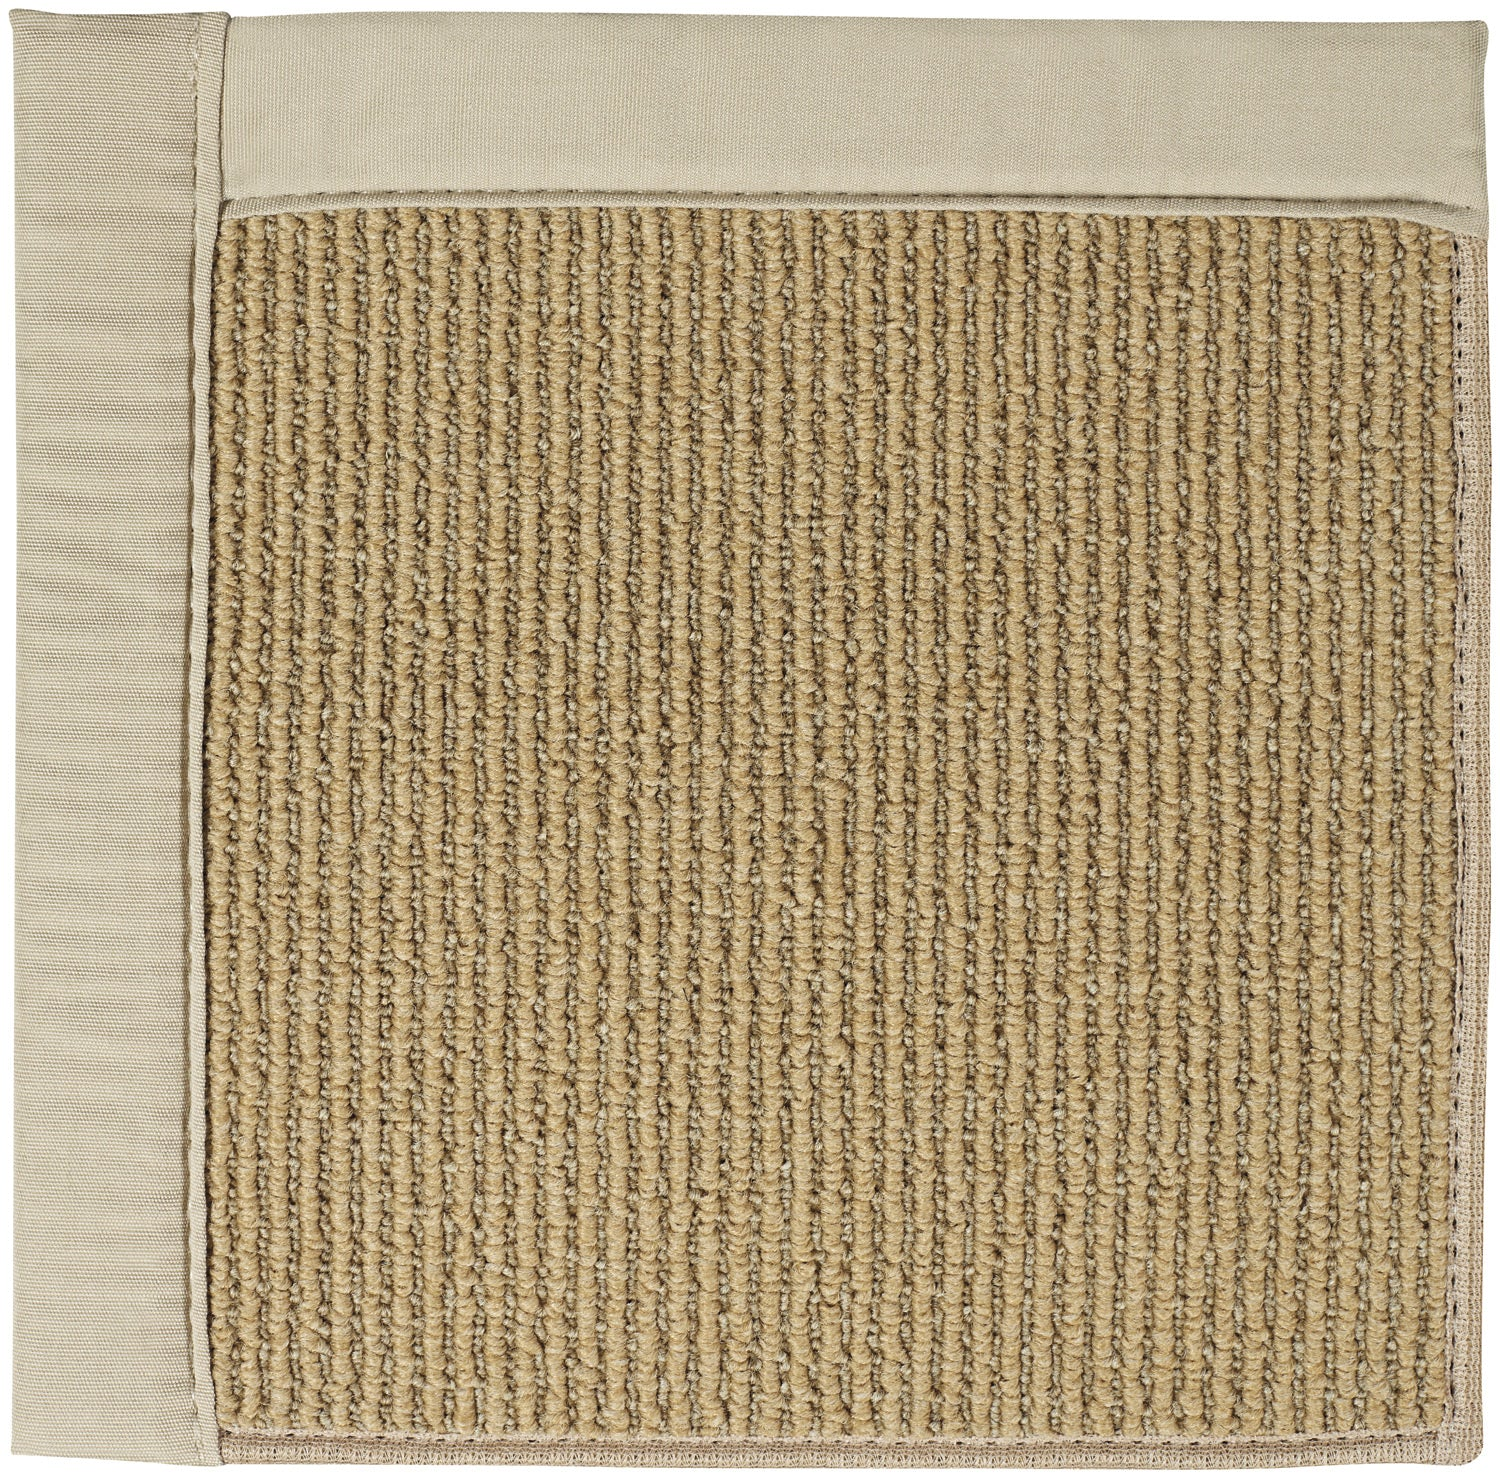 Capel Beachfront Shore 2036 Ecru 717 Area Rug main image